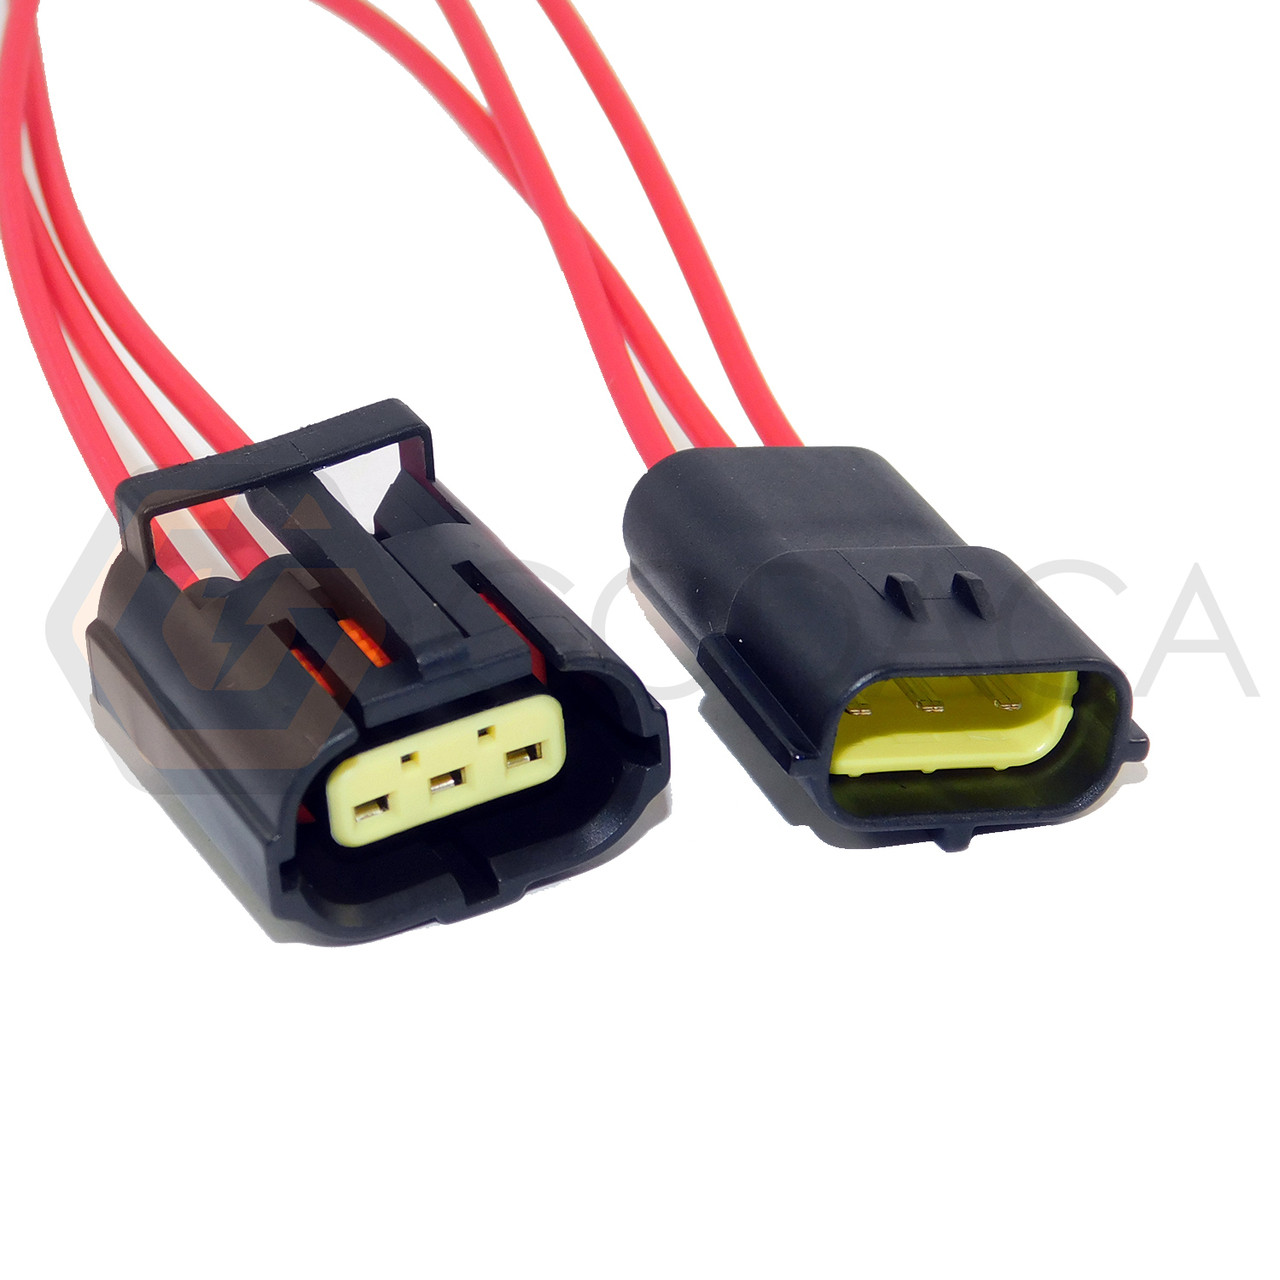 1x female and male connector 3 way for ford inertia wpt 414 godaca llc  [ 1280 x 1280 Pixel ]